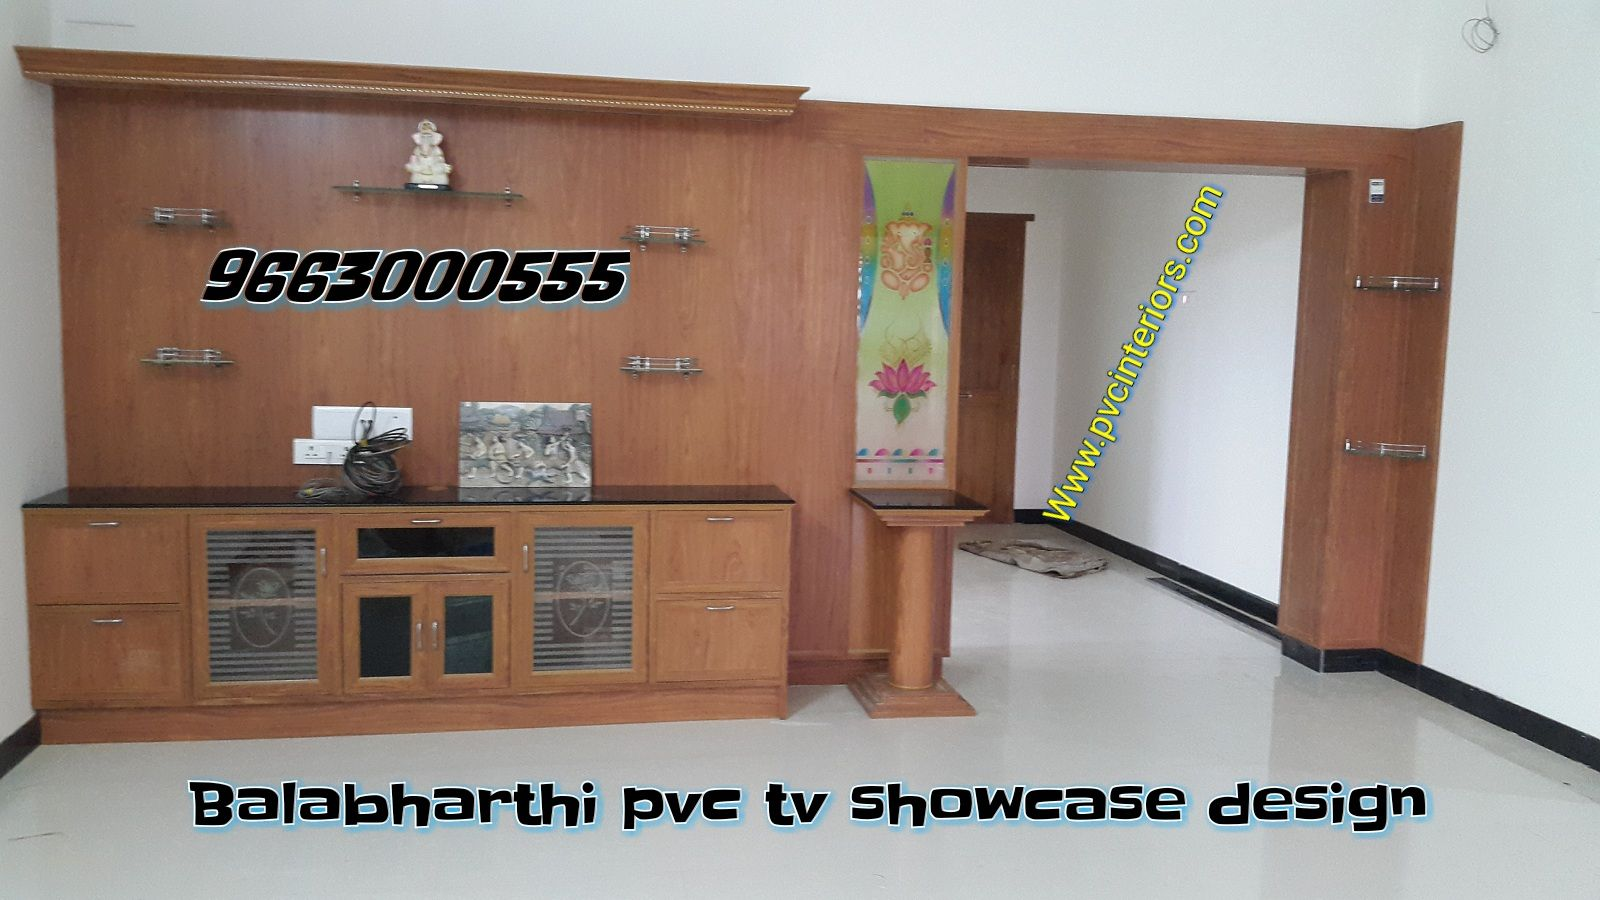 Pvc Tv Showcase Tv Cabinet Furniture Online Balabharathi